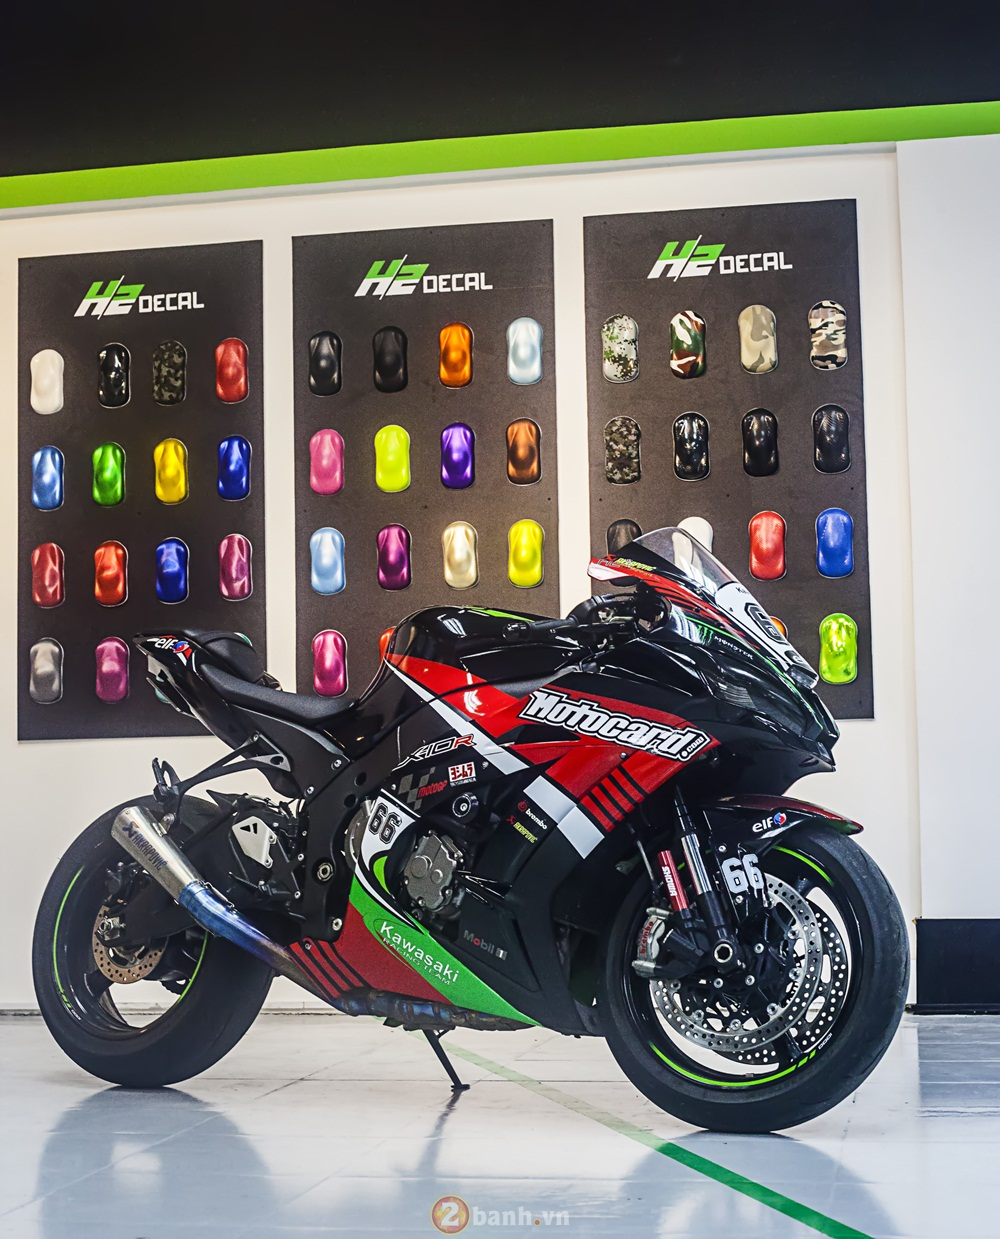 ZX10R 2016 chat choi trong bo canh dua phong canh moi - 4